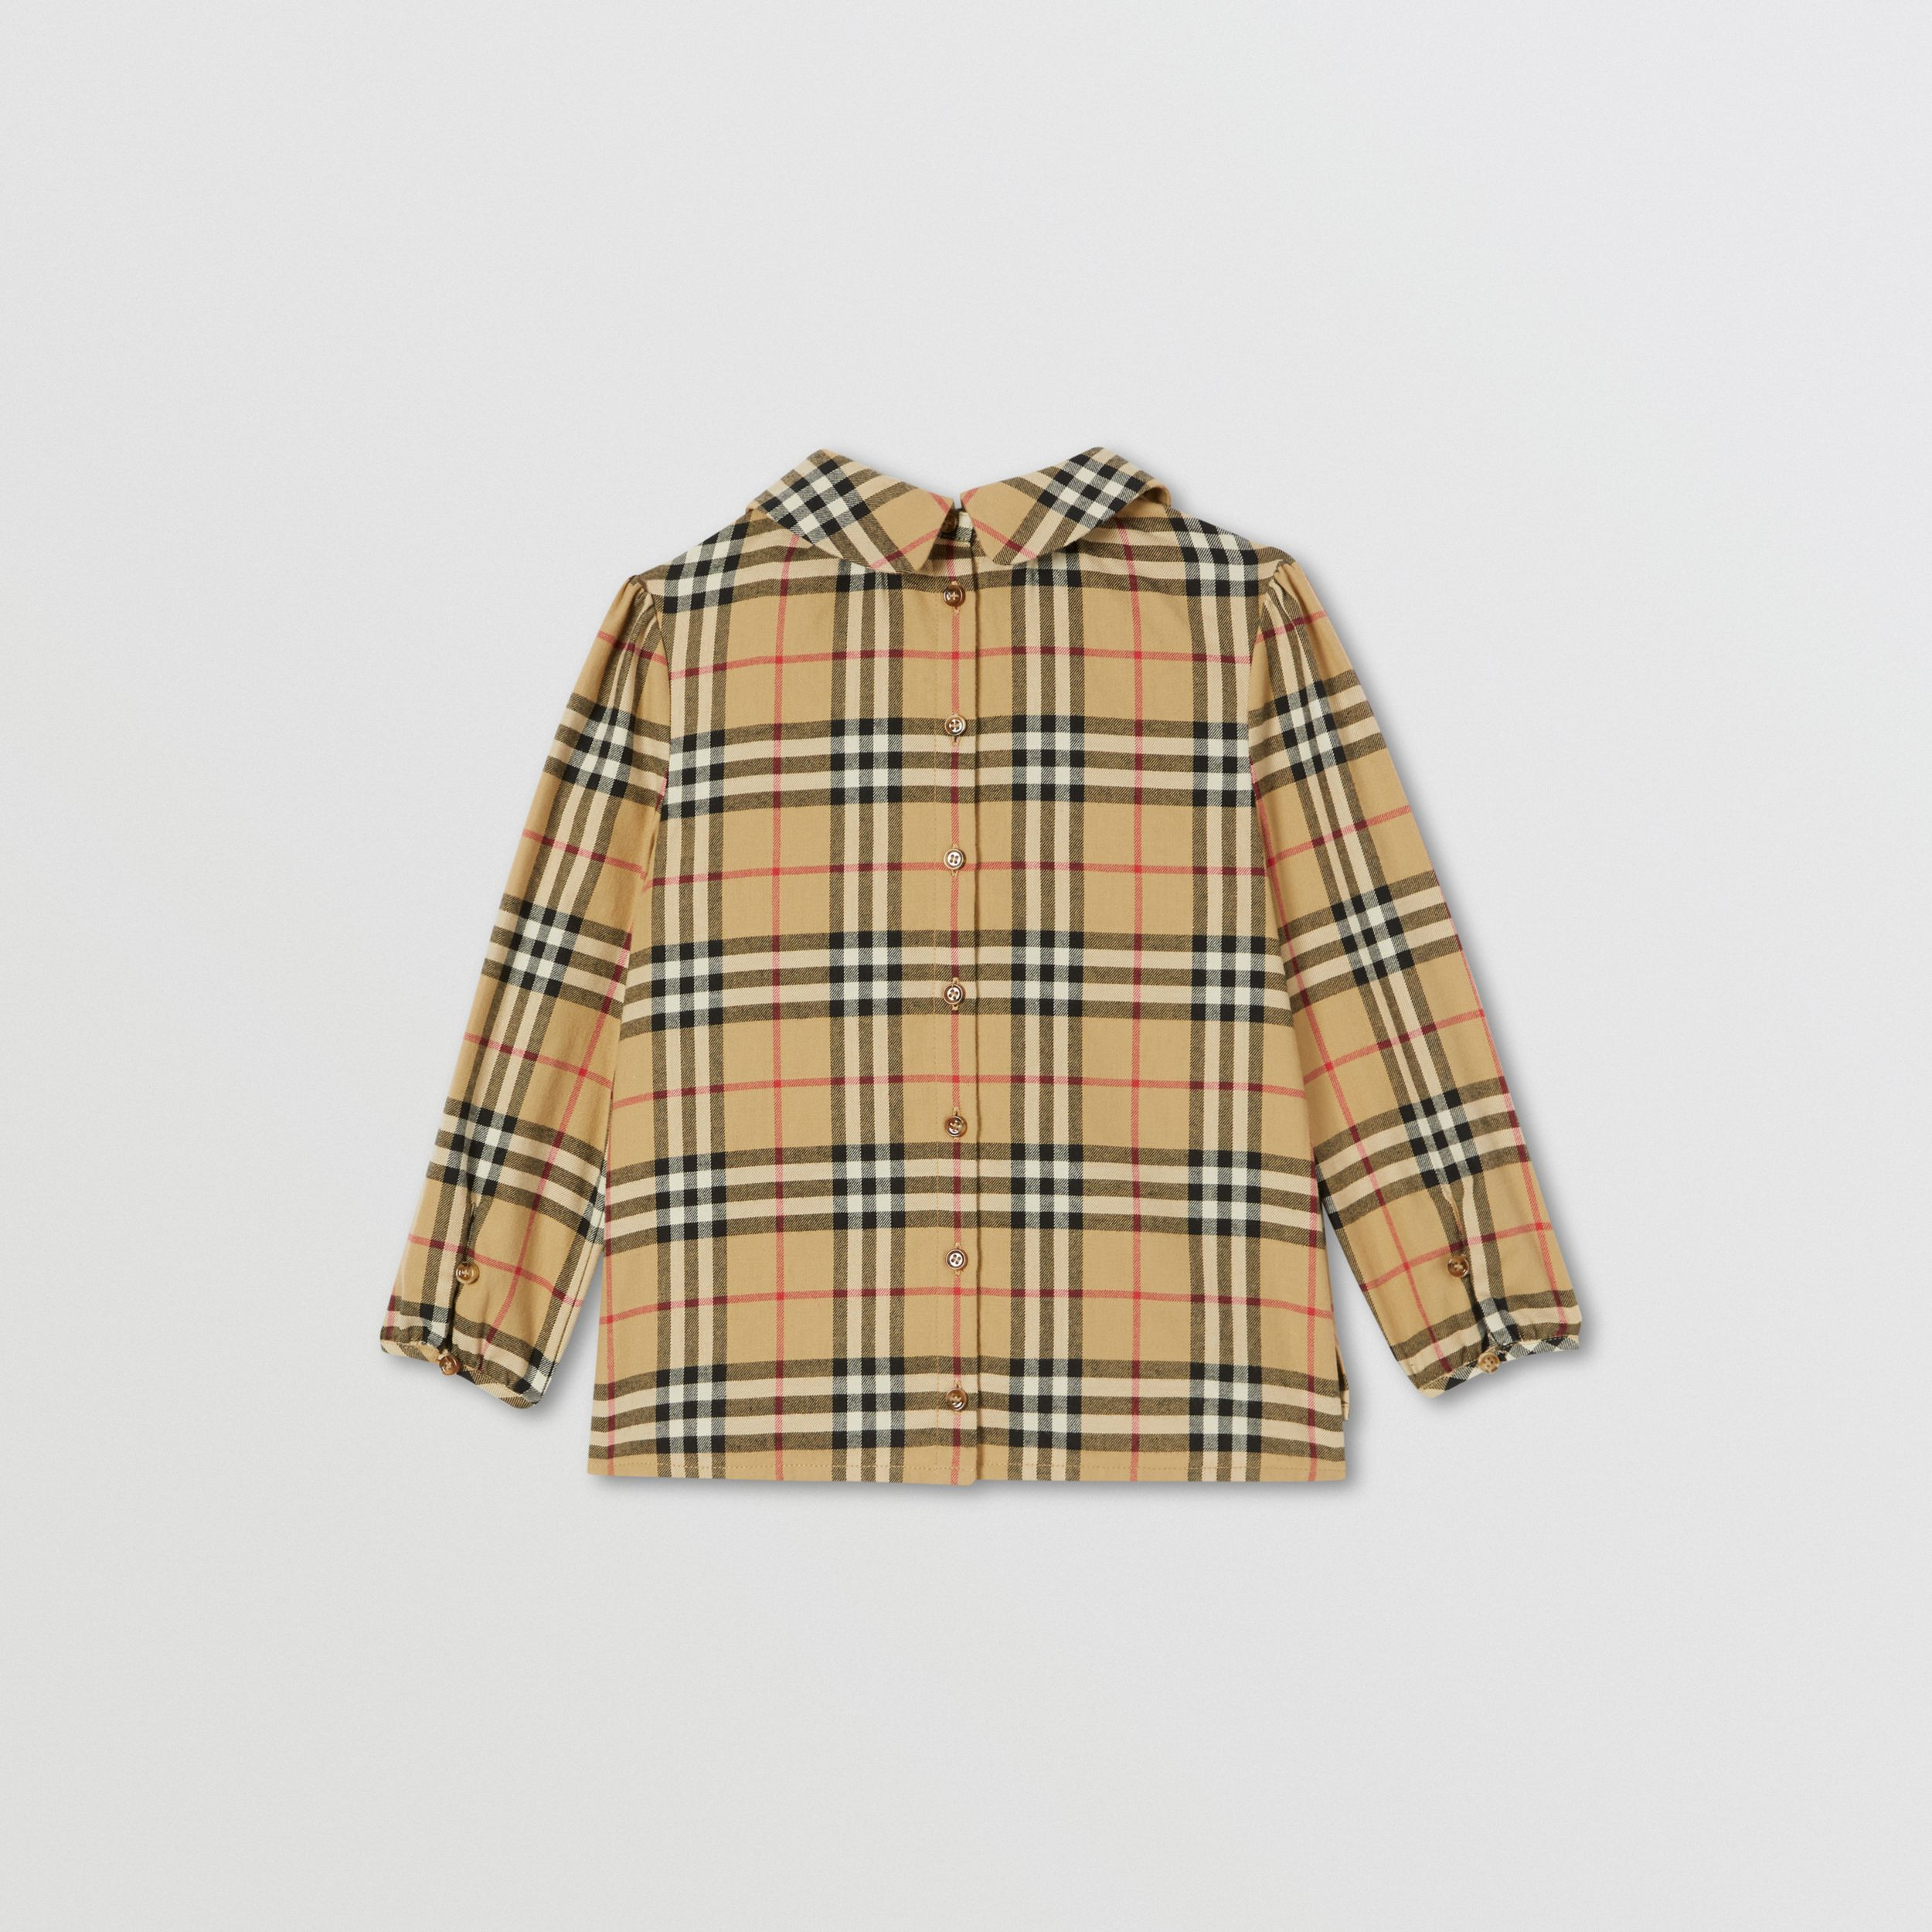 Peter Pan Collar Vintage Check Cotton Blouse | Burberry - 4